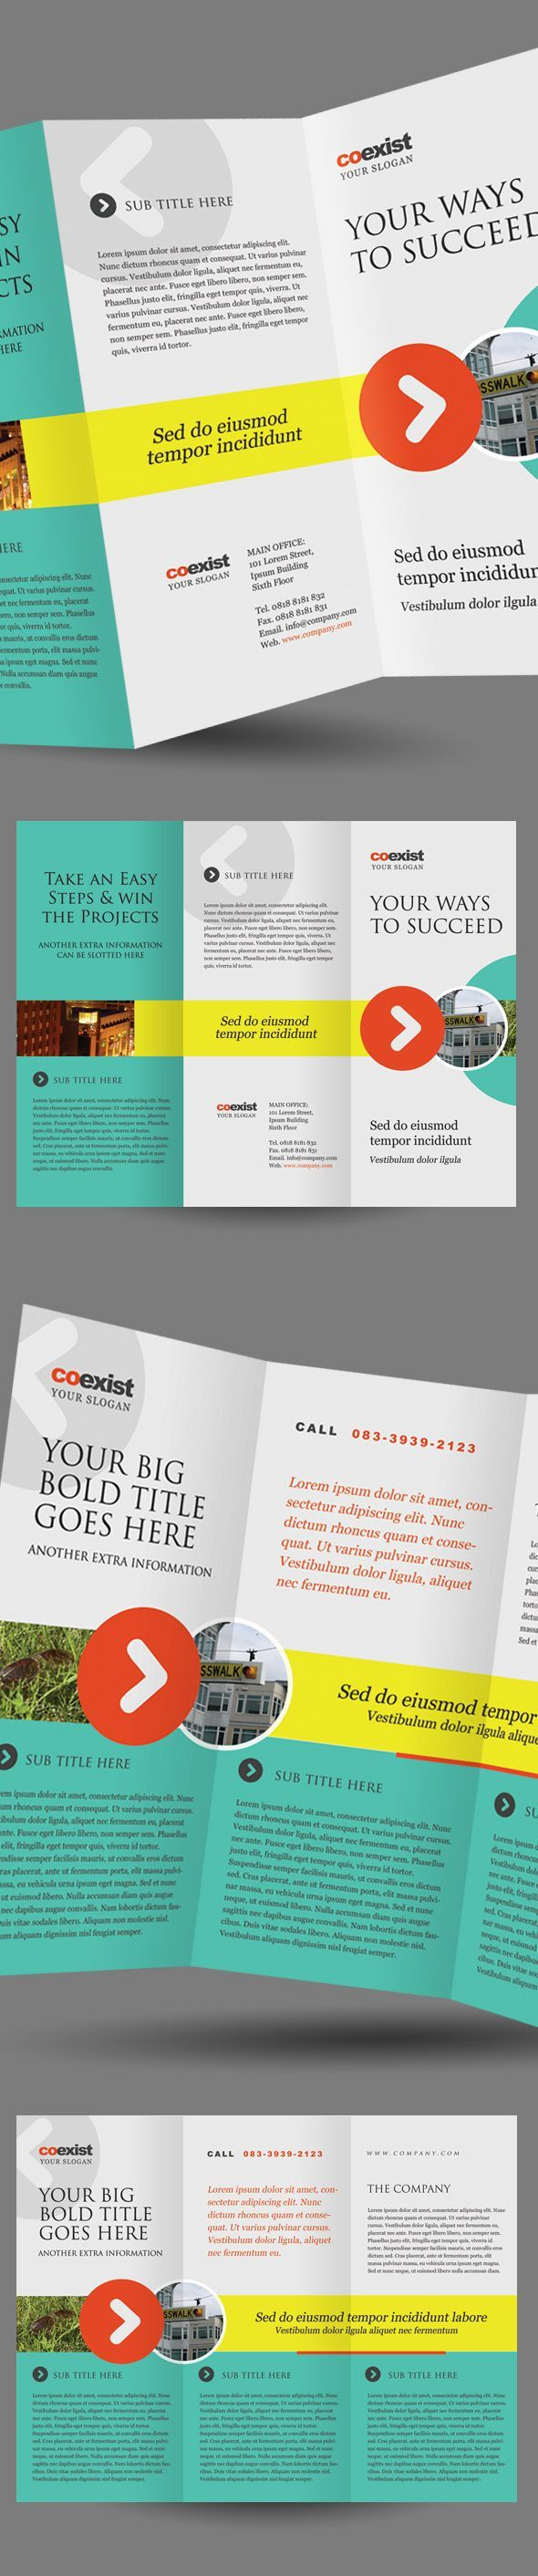 cool brochure templates - cool layout with movement accross panels love kb